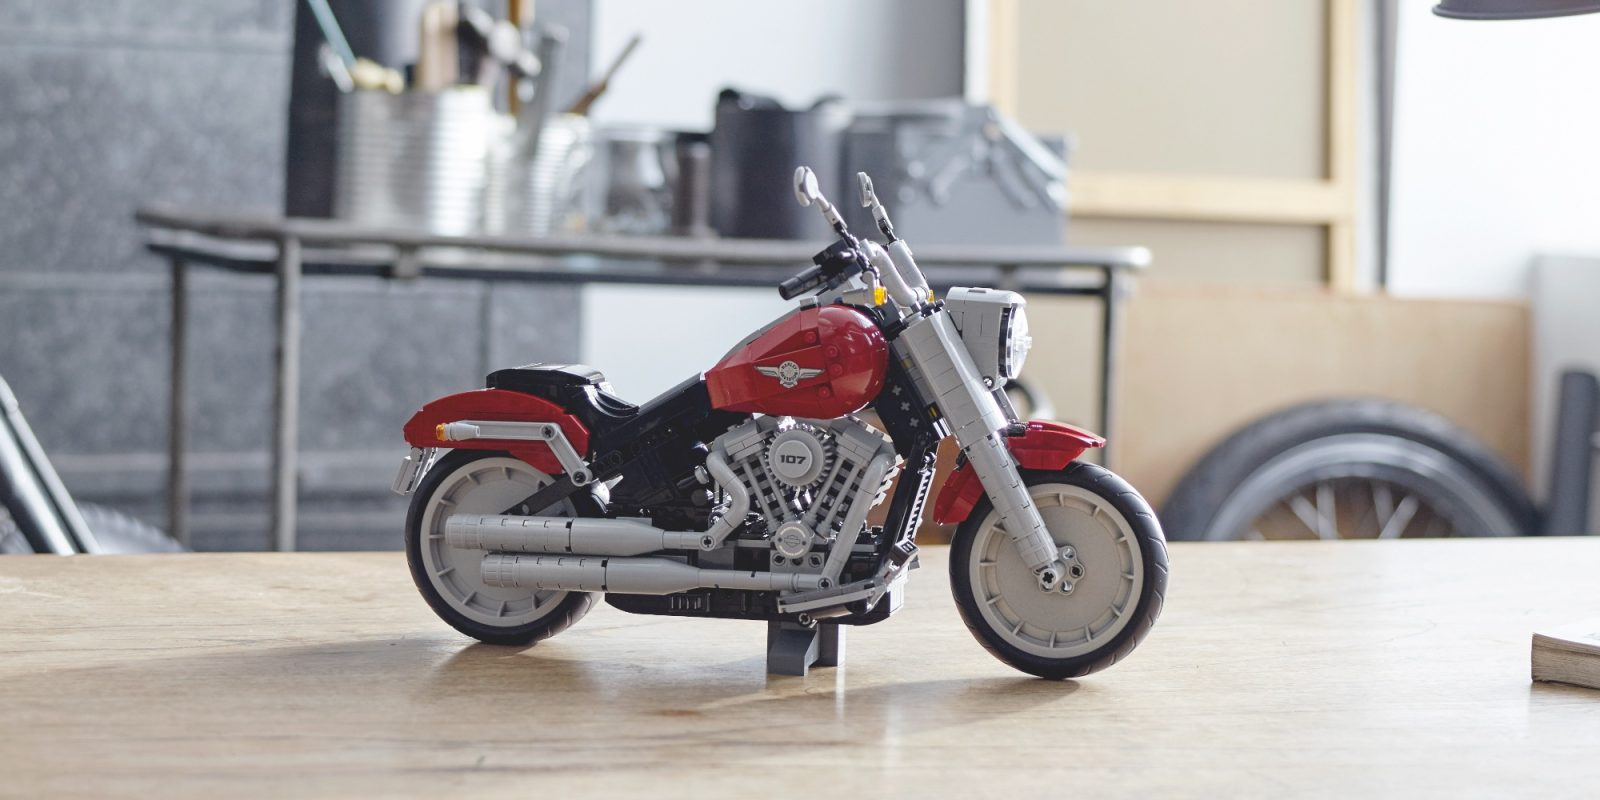 Harley-Davidson's Fat Boy motorcycle cruises into LEGO form as 1,000-piece set